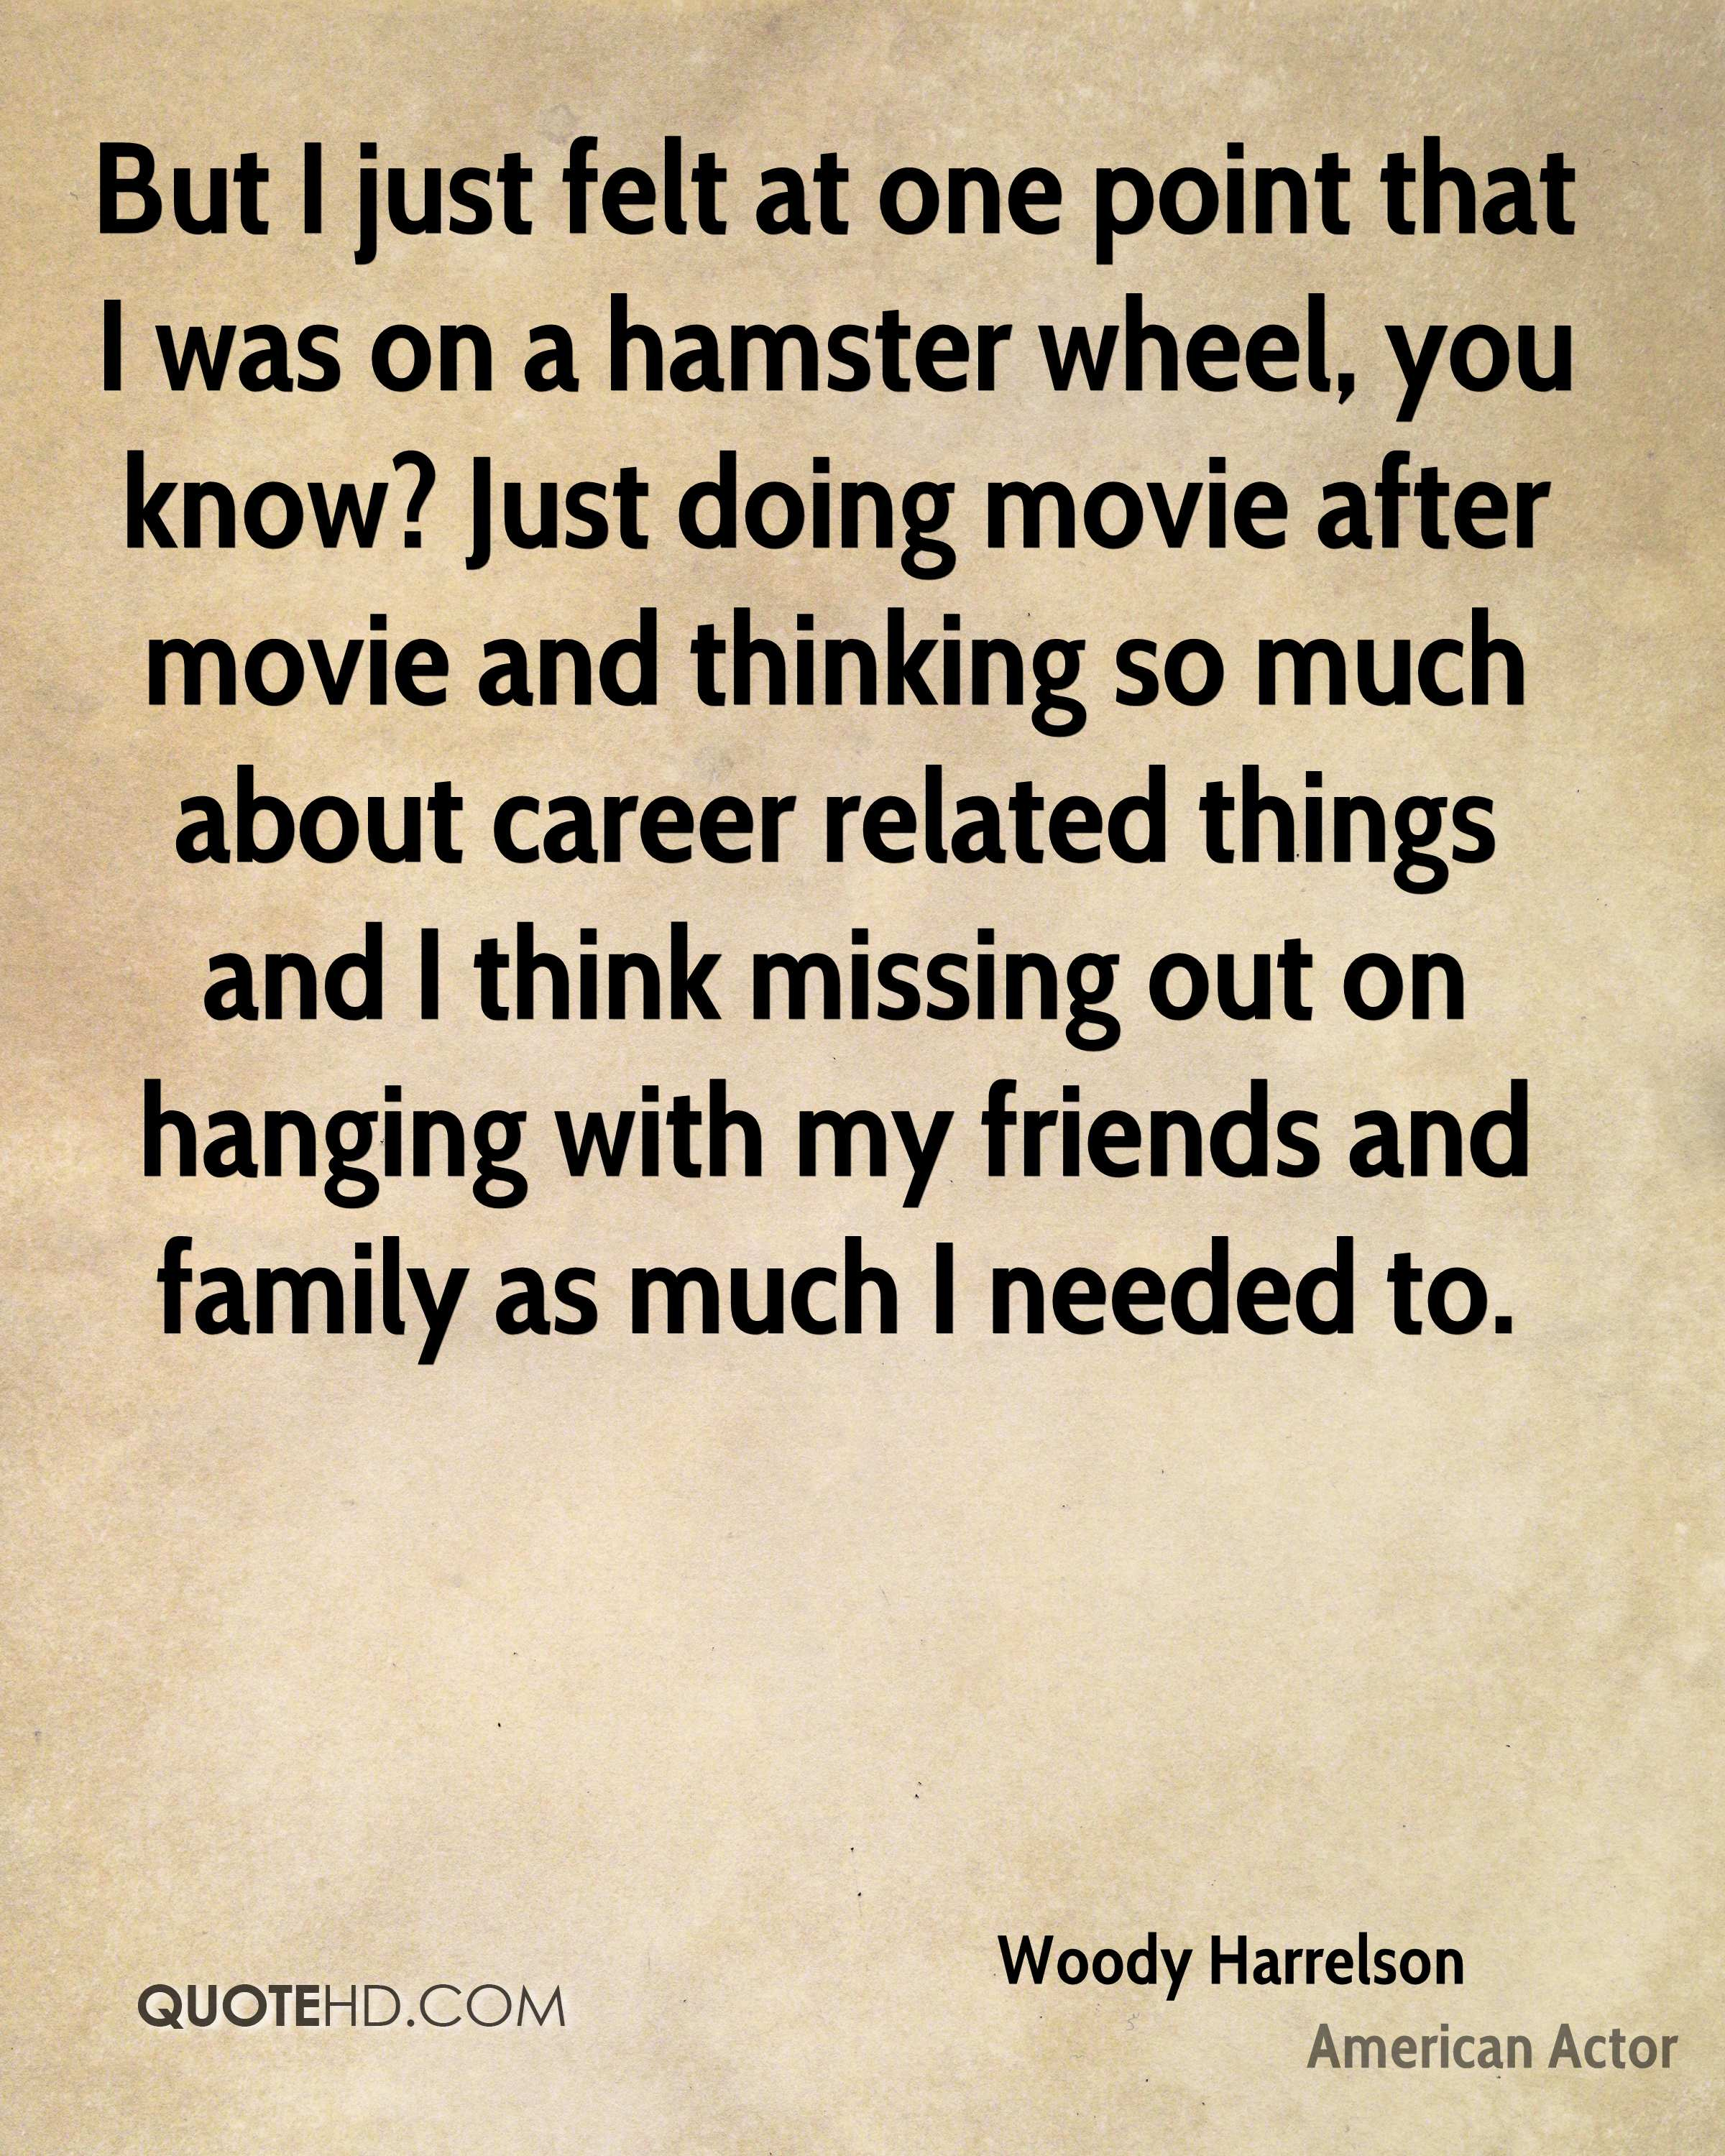 But I just felt at one point that I was on a hamster wheel, you know? Just doing movie after movie and thinking so much about career related things and I think missing out on hanging with my friends and family as much I needed to.